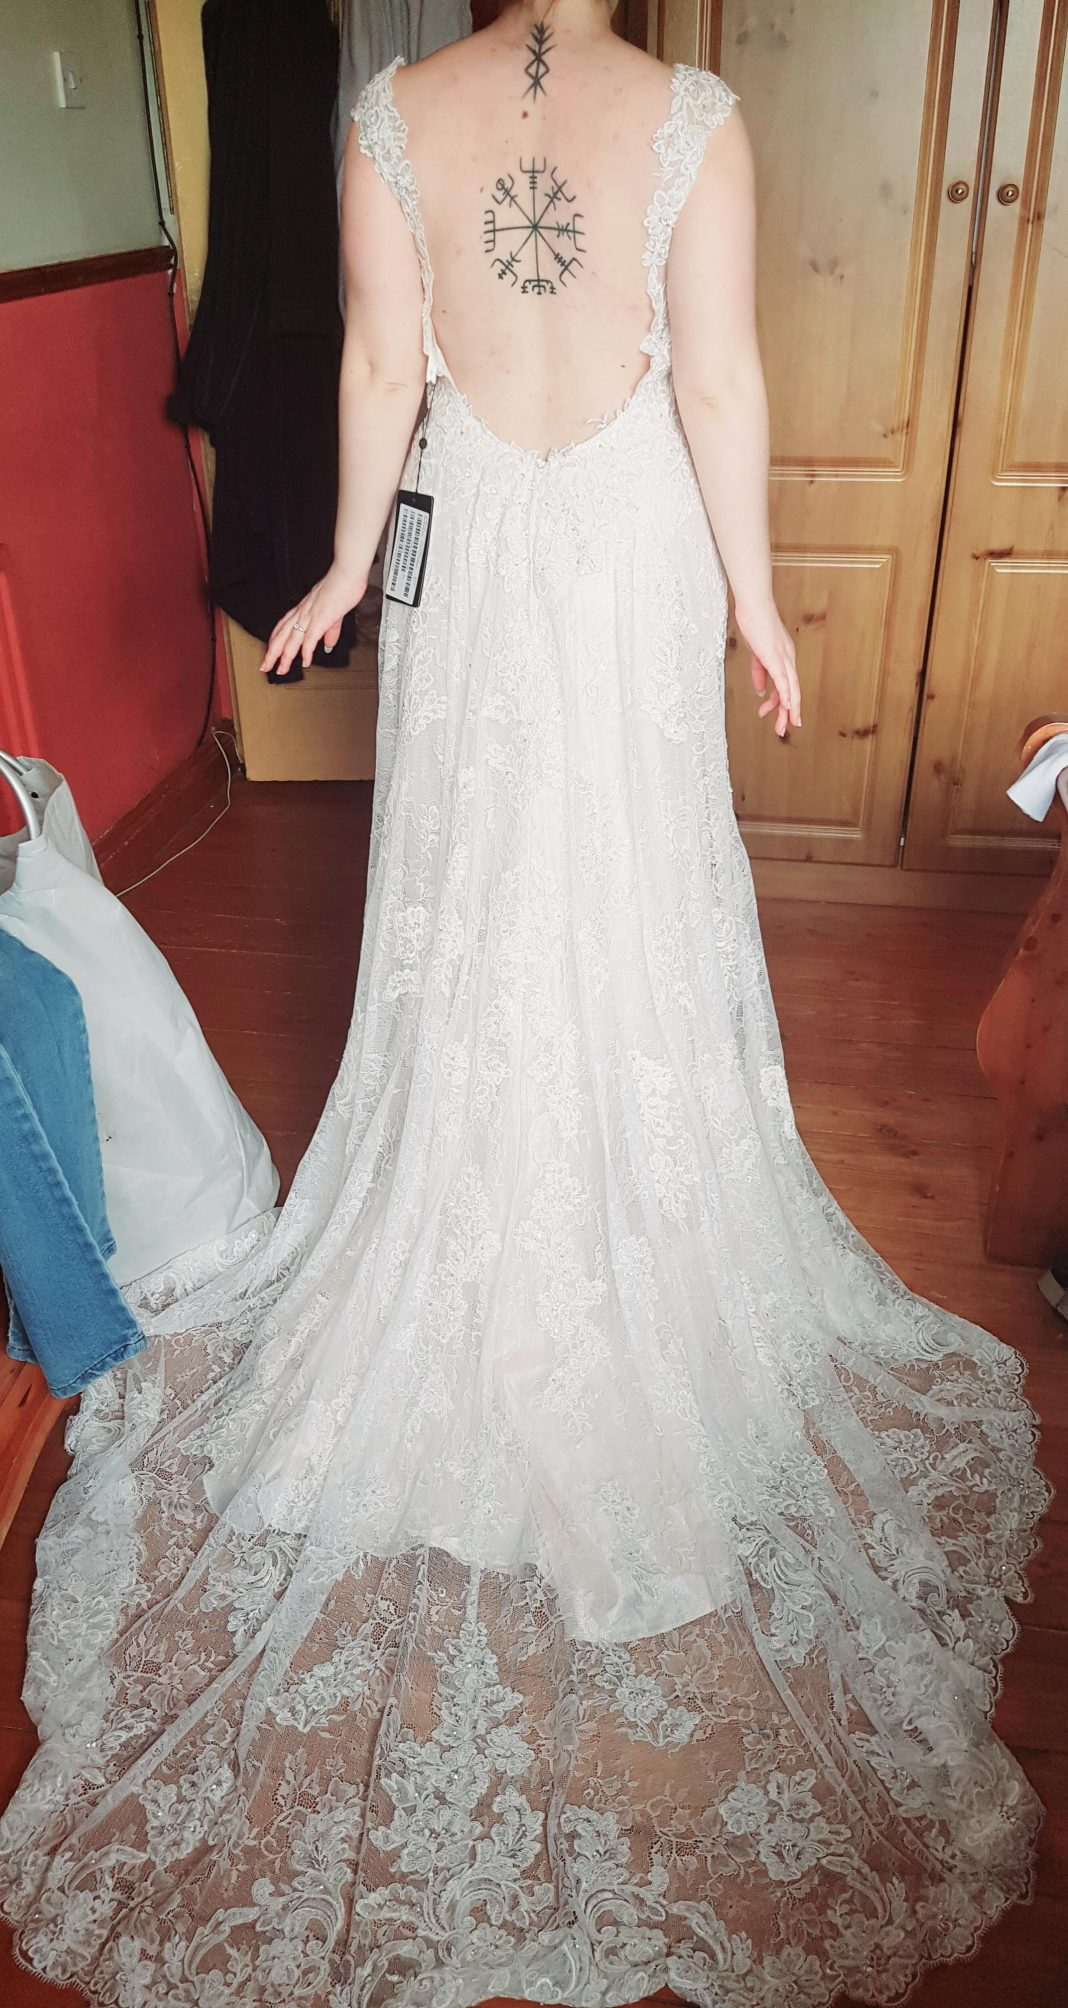 My cocomelody dress, this is before alterations. I'm so happy with the quality of it, I can't wait for the big day in October.